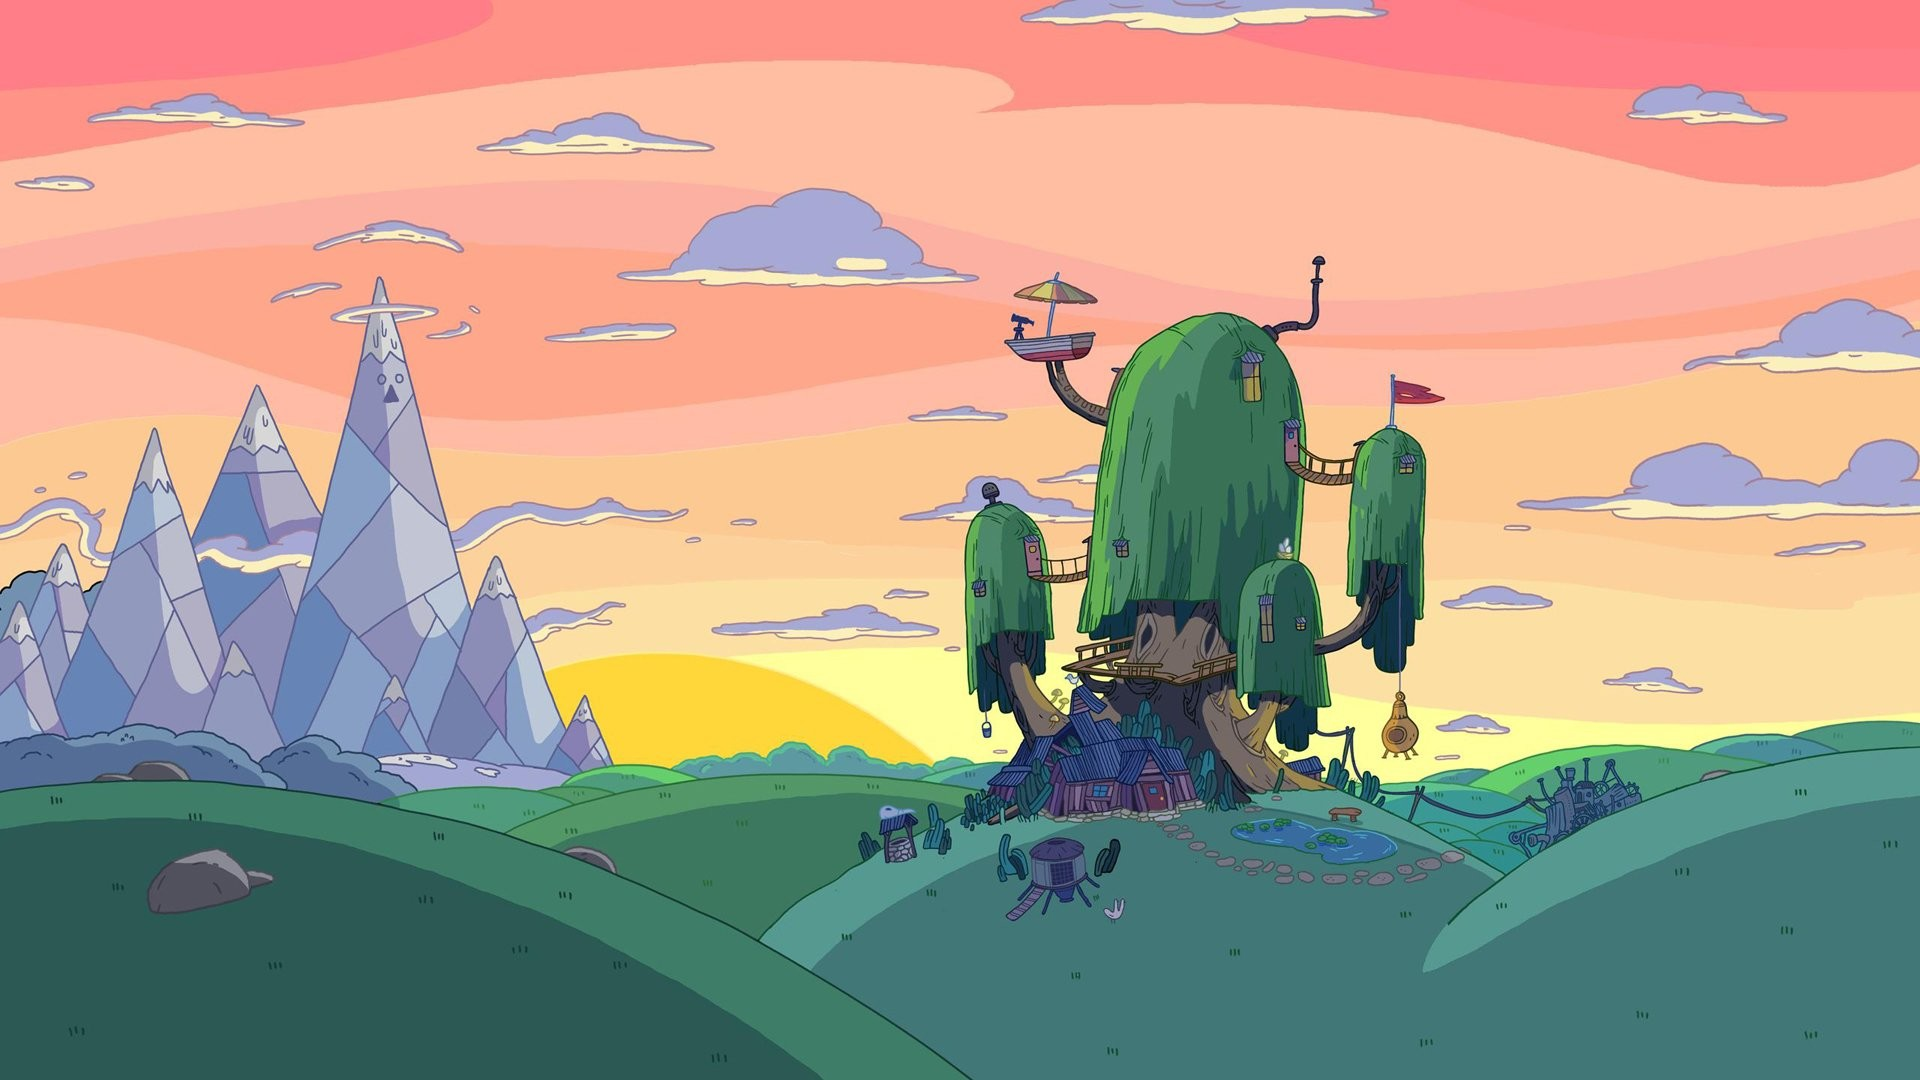 adventure time wallpapers hd ·①